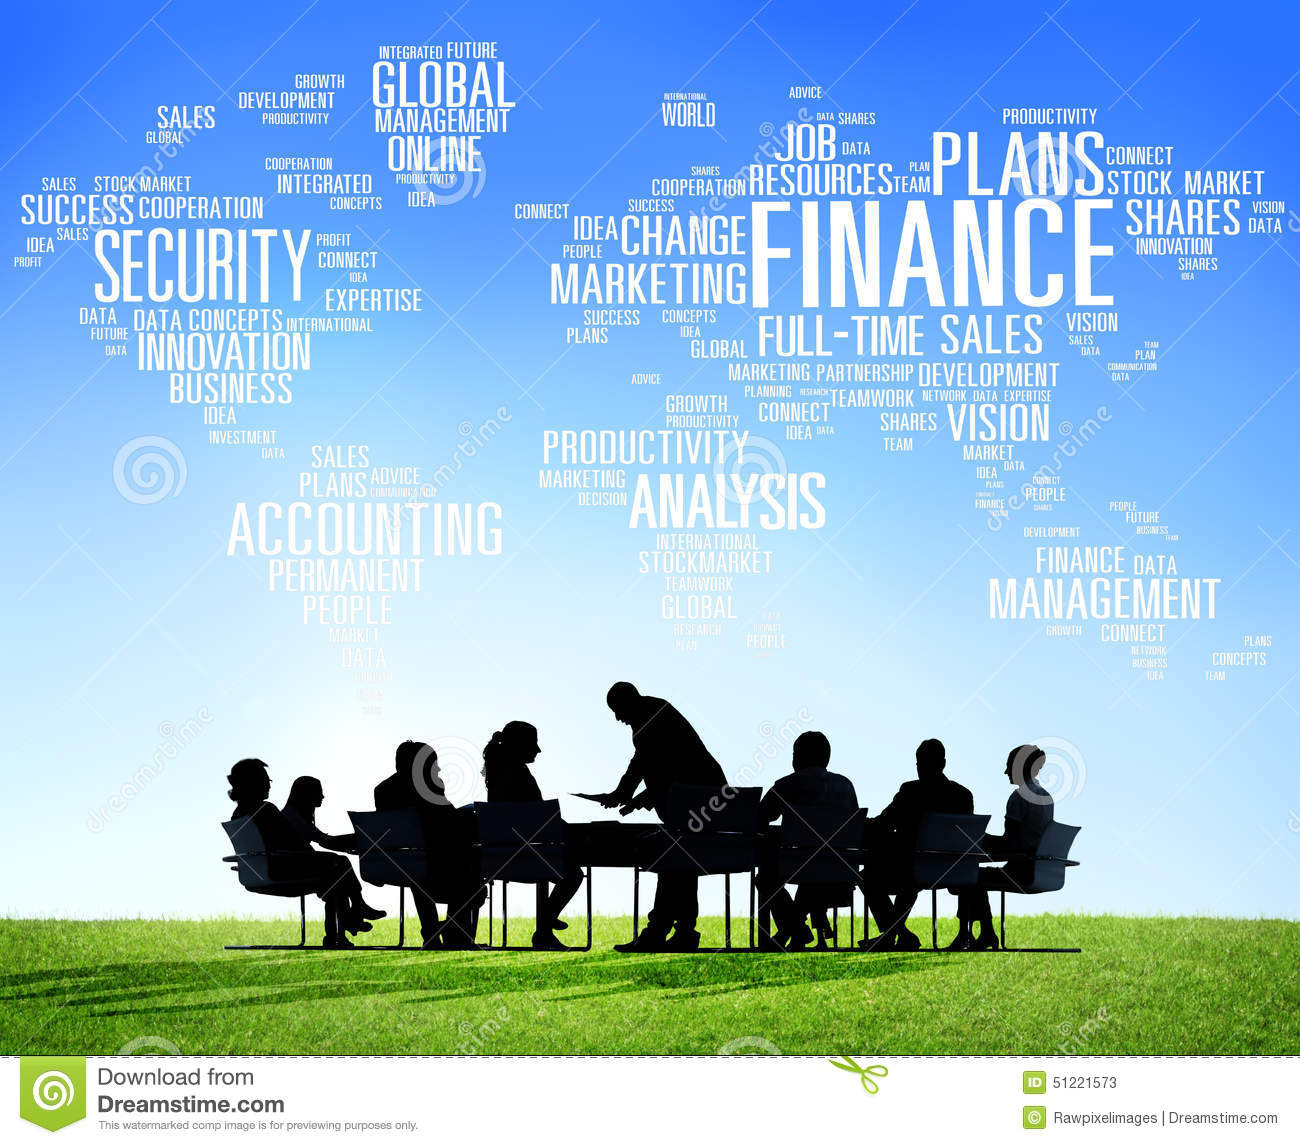 Finance: Global Finance Business Financial Marketing Money Concept